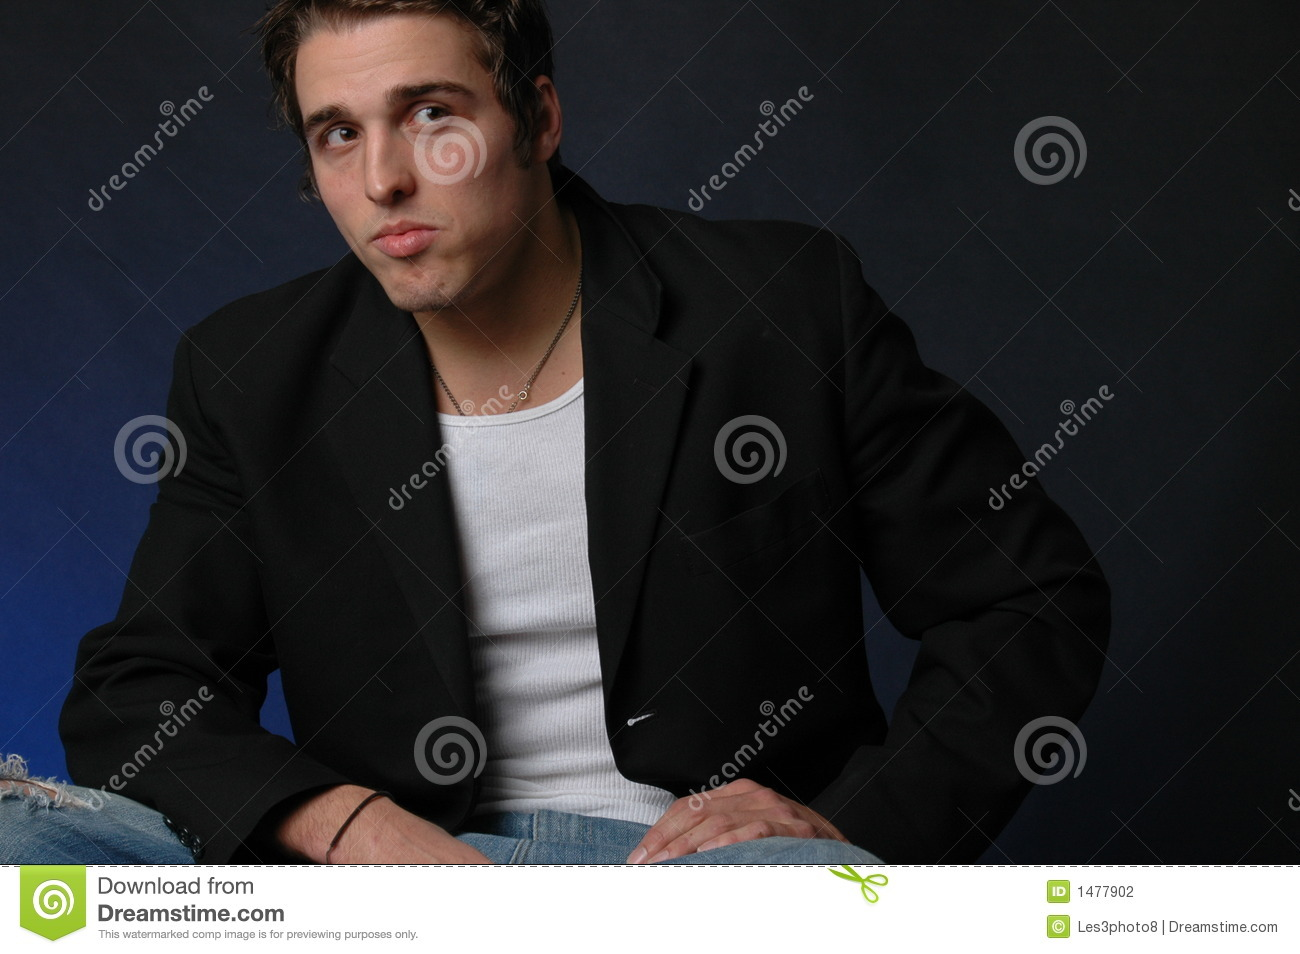 Italian American: Portrait Of An Italian American Male Stock Photography